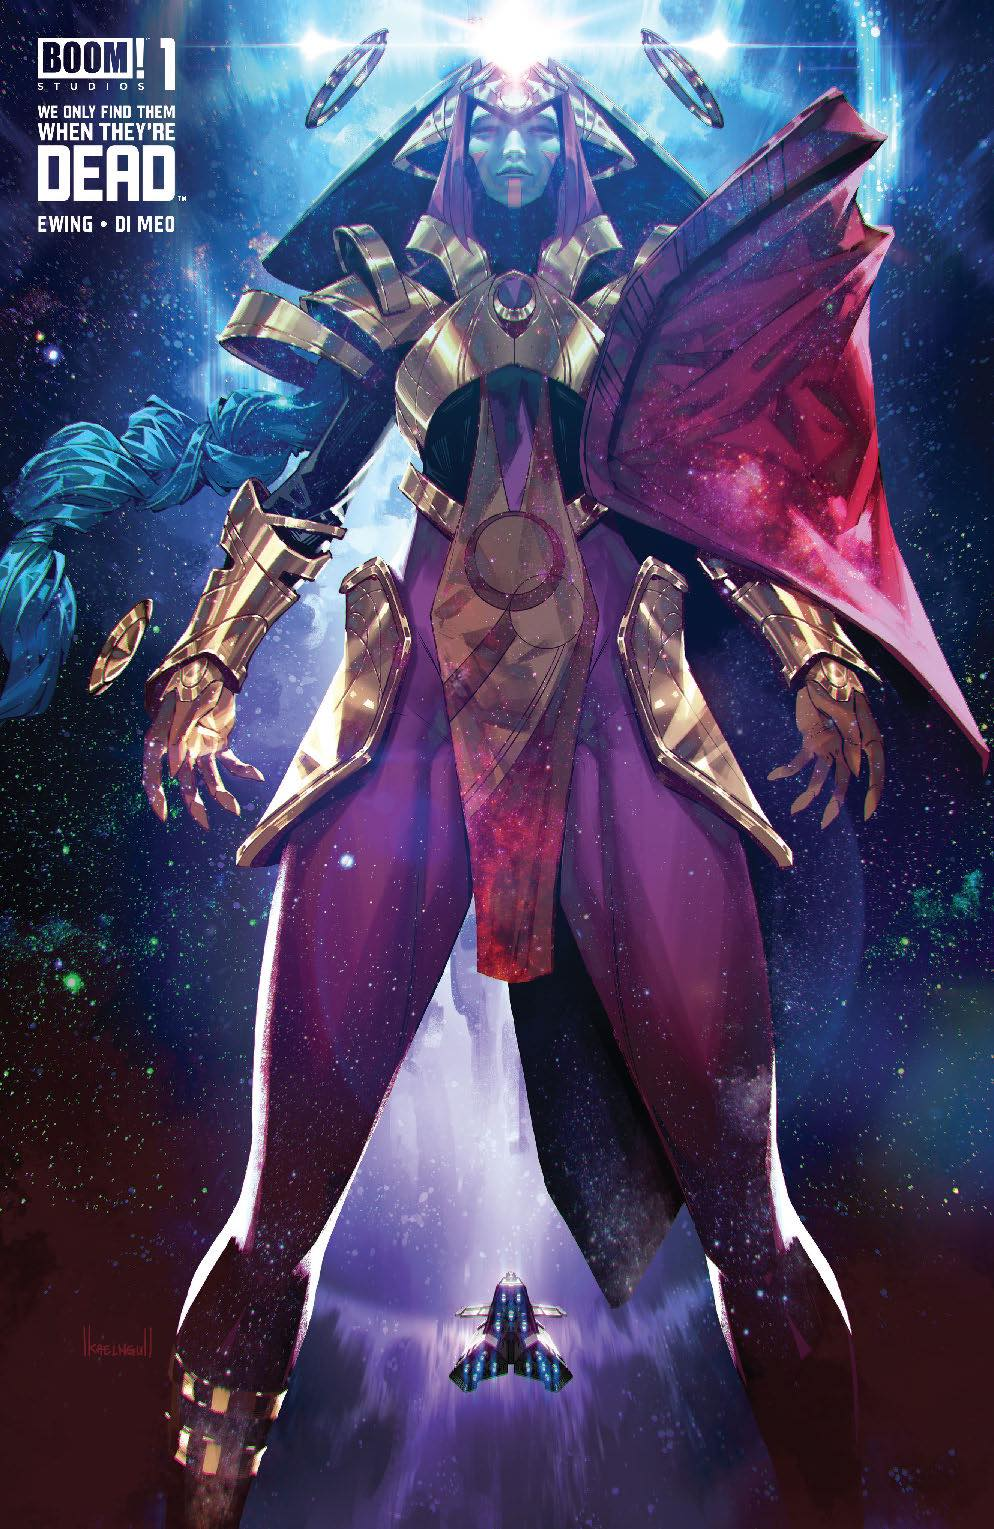 09/09/2020 WE ONLY FIND THEM WHEN THEYRE DEAD #1 KAEL NGU EXCLUSIVE VARIANT